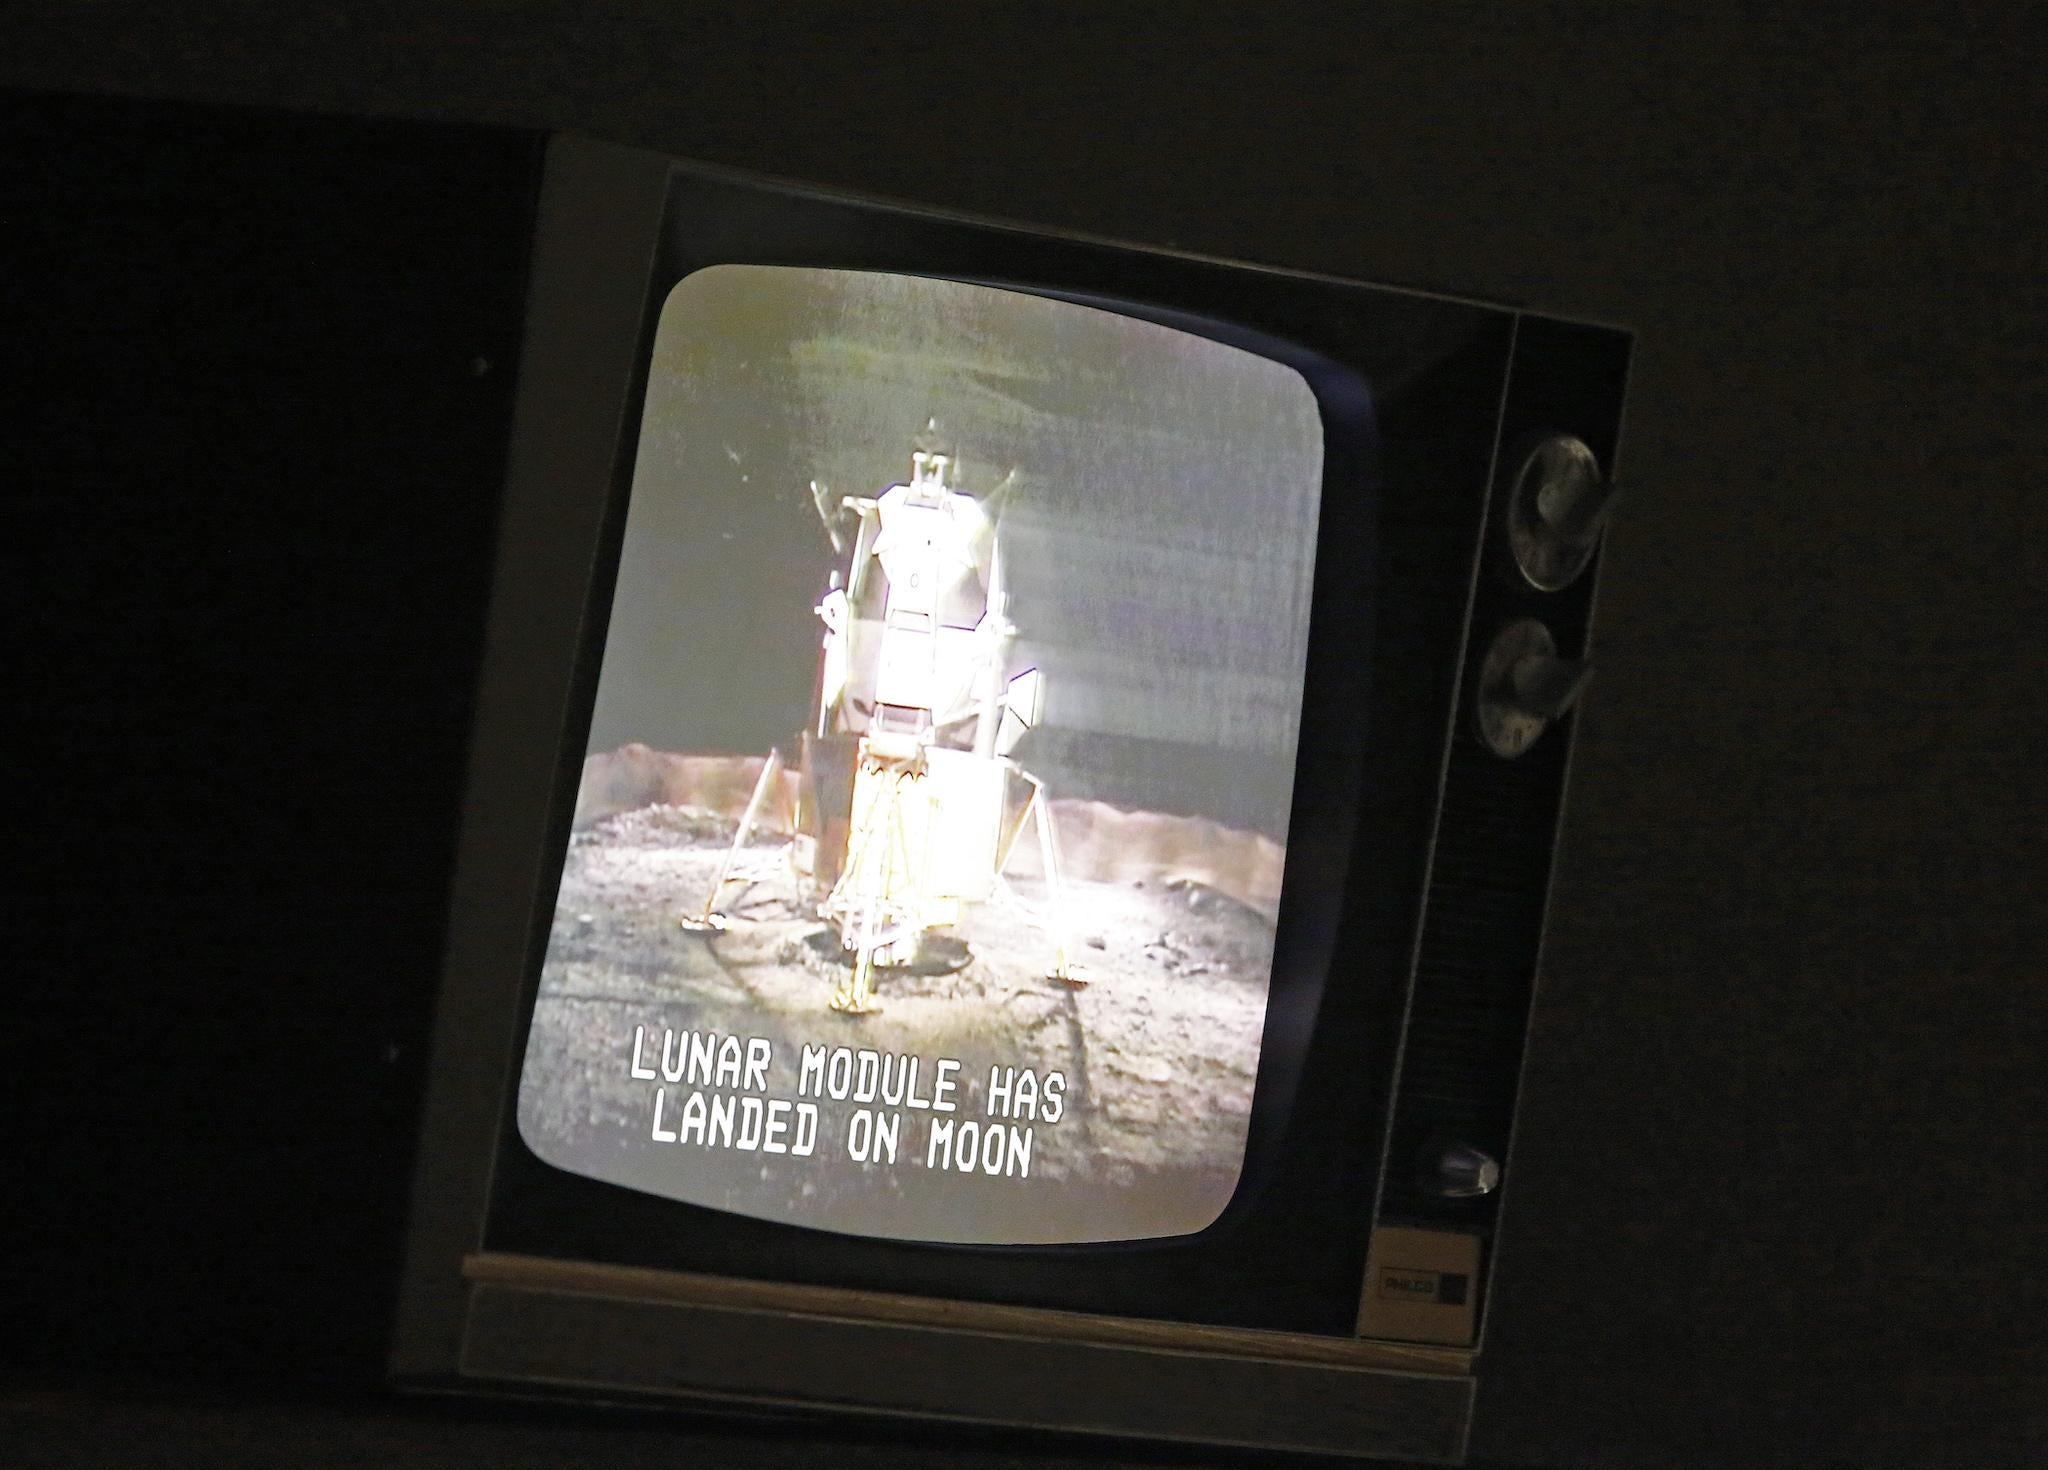 50th anniversary of Moon landing: The secret speech we would have heard if Apollo 11 mission went wrong